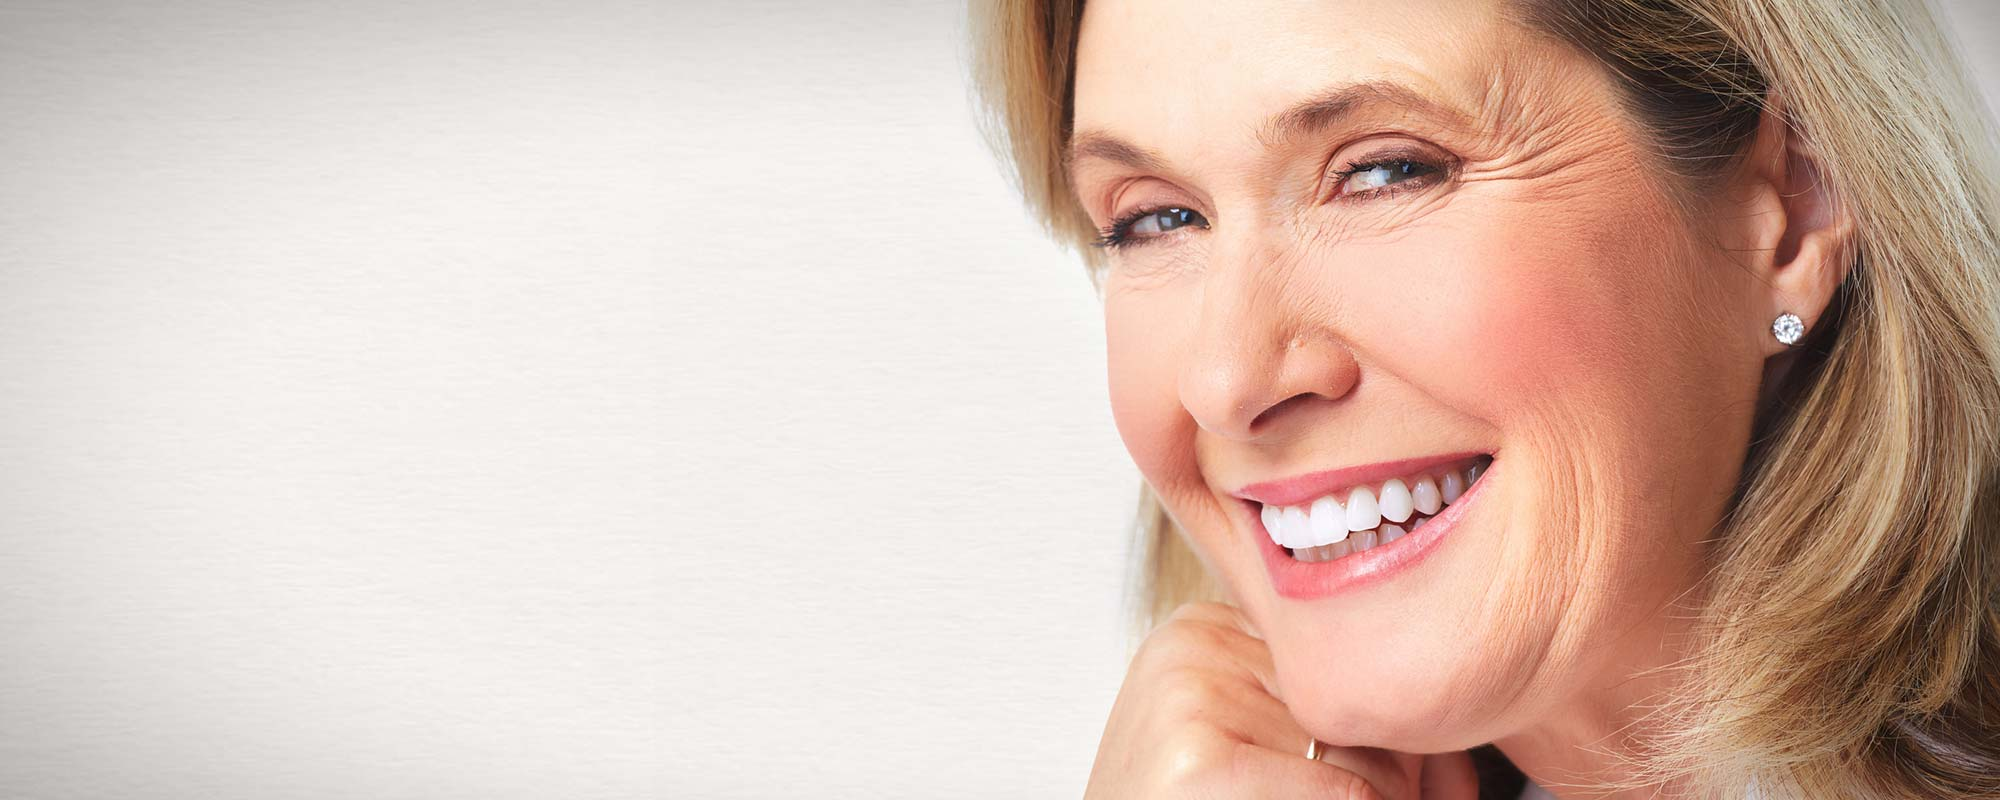 Dental Associates offers you a complete line of dental crowns and bridges.